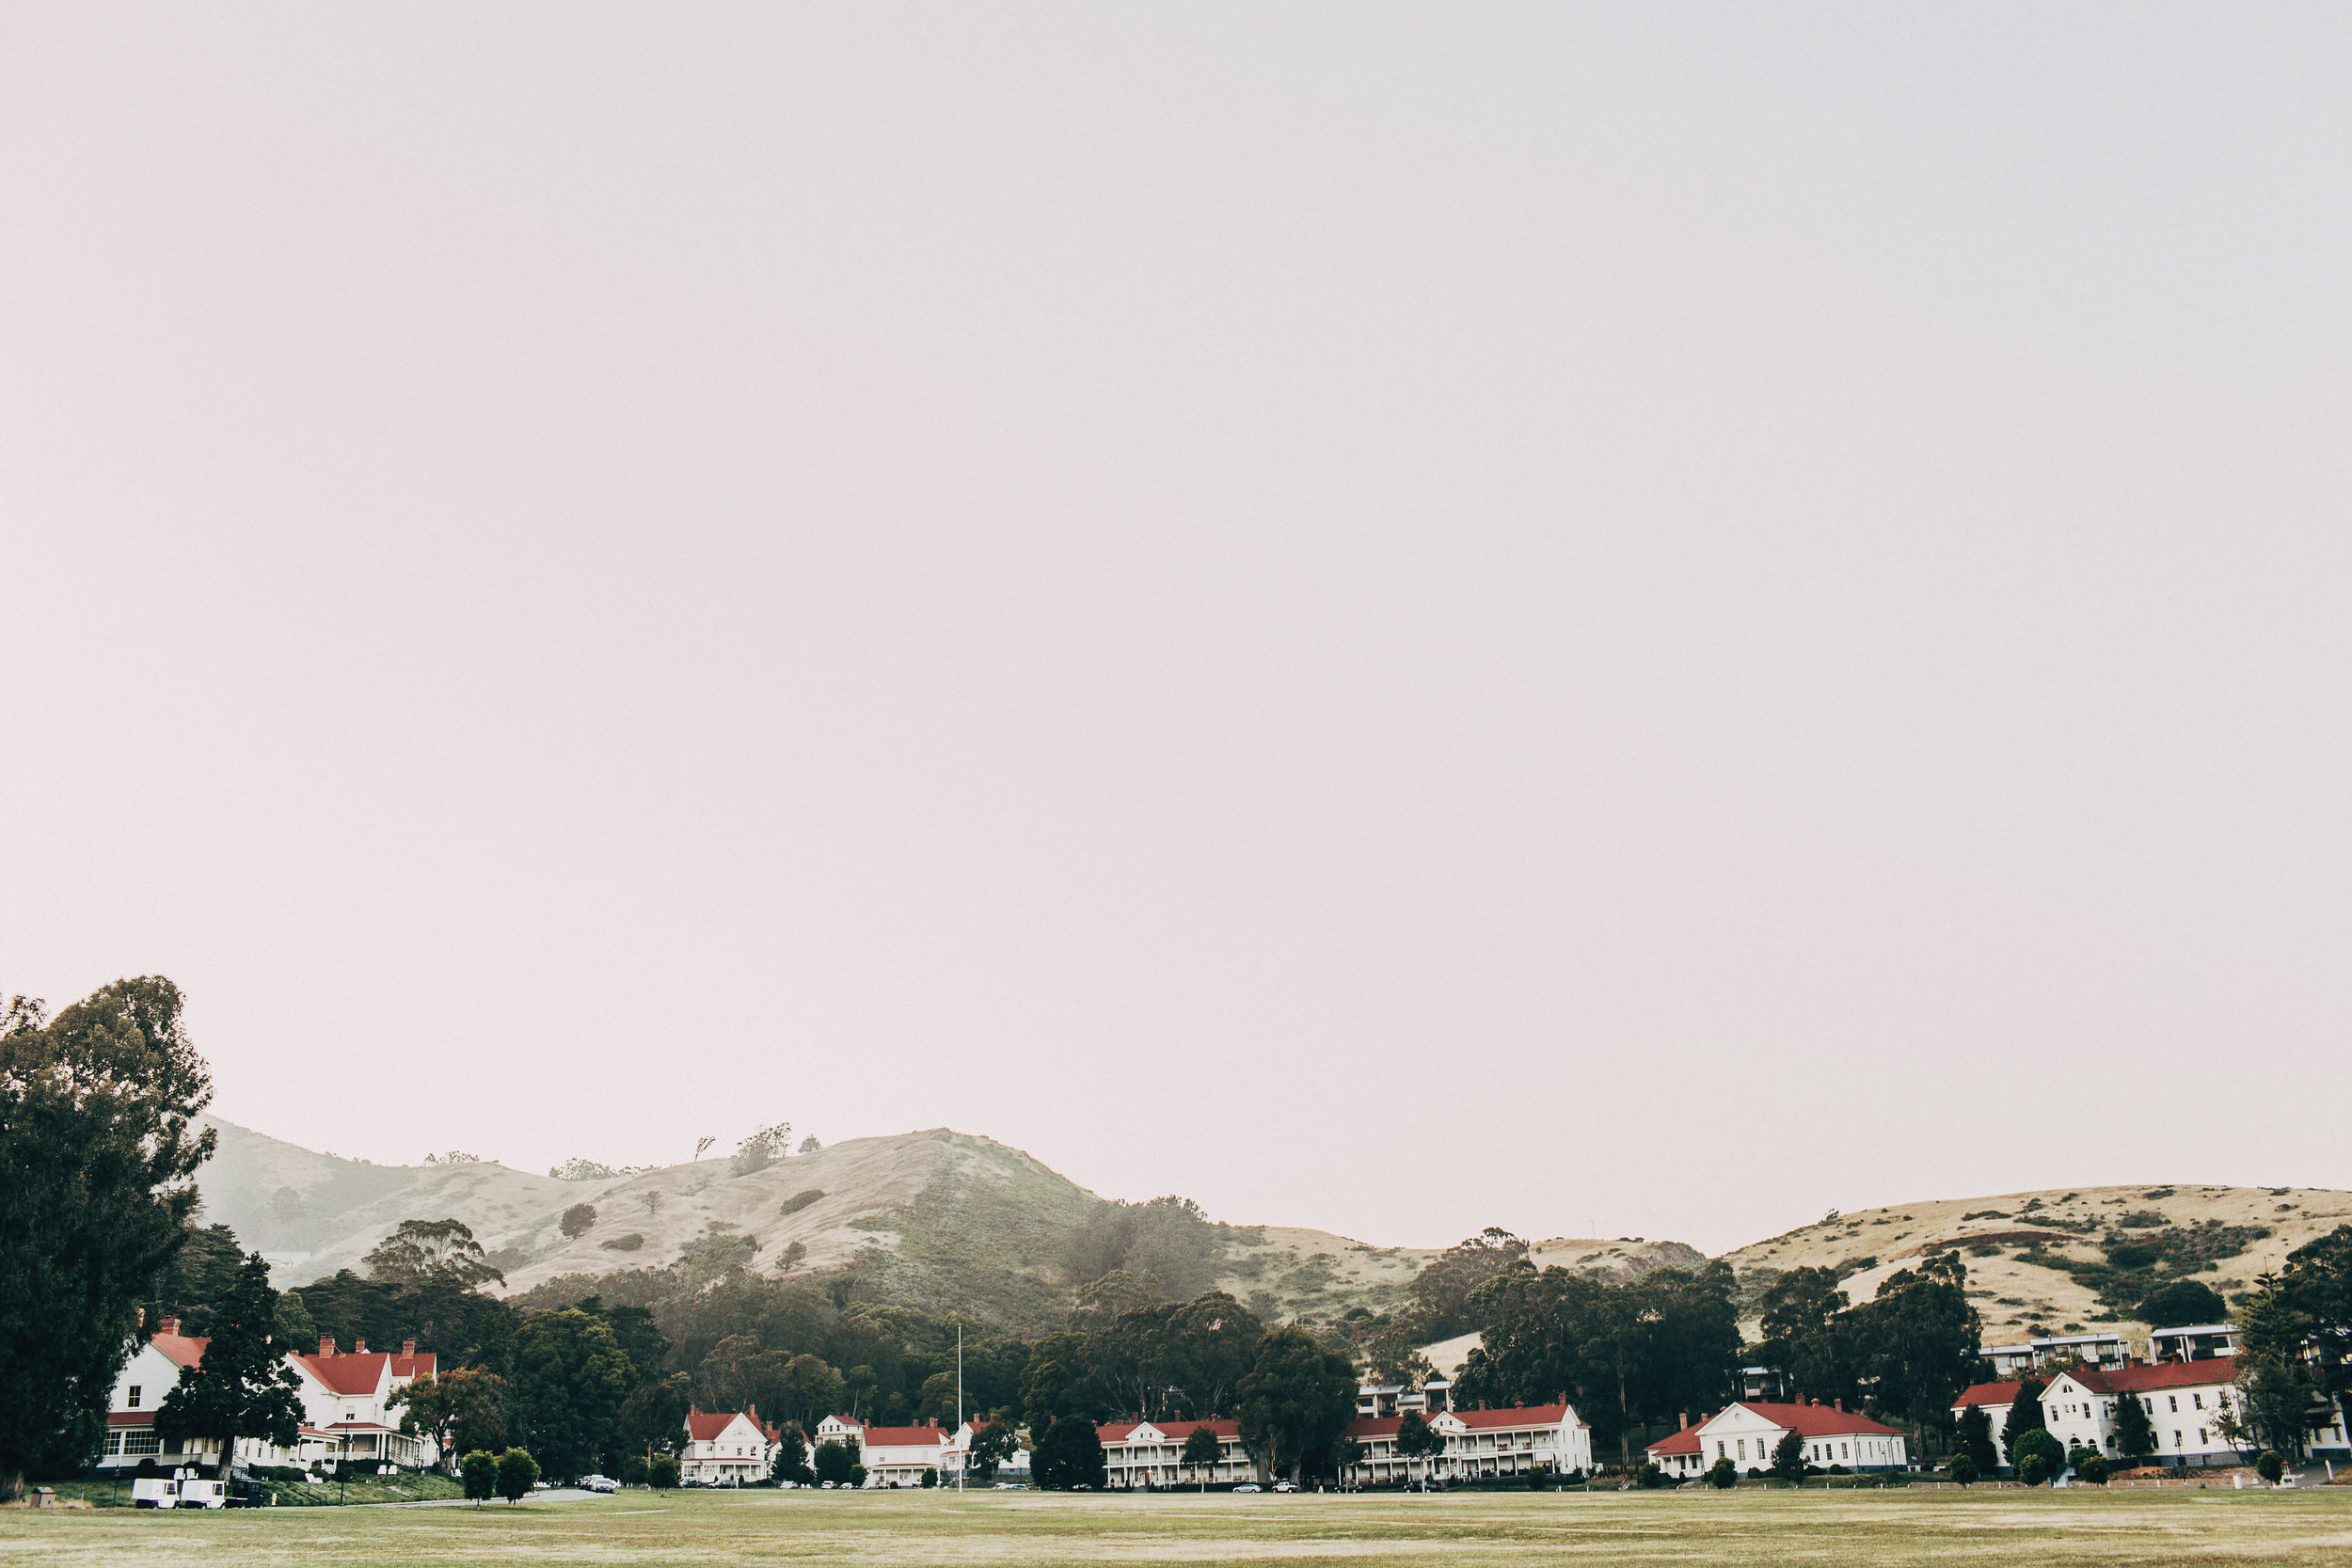 CavalloPoint-TheRobertsonsPhotography-0005.jpg